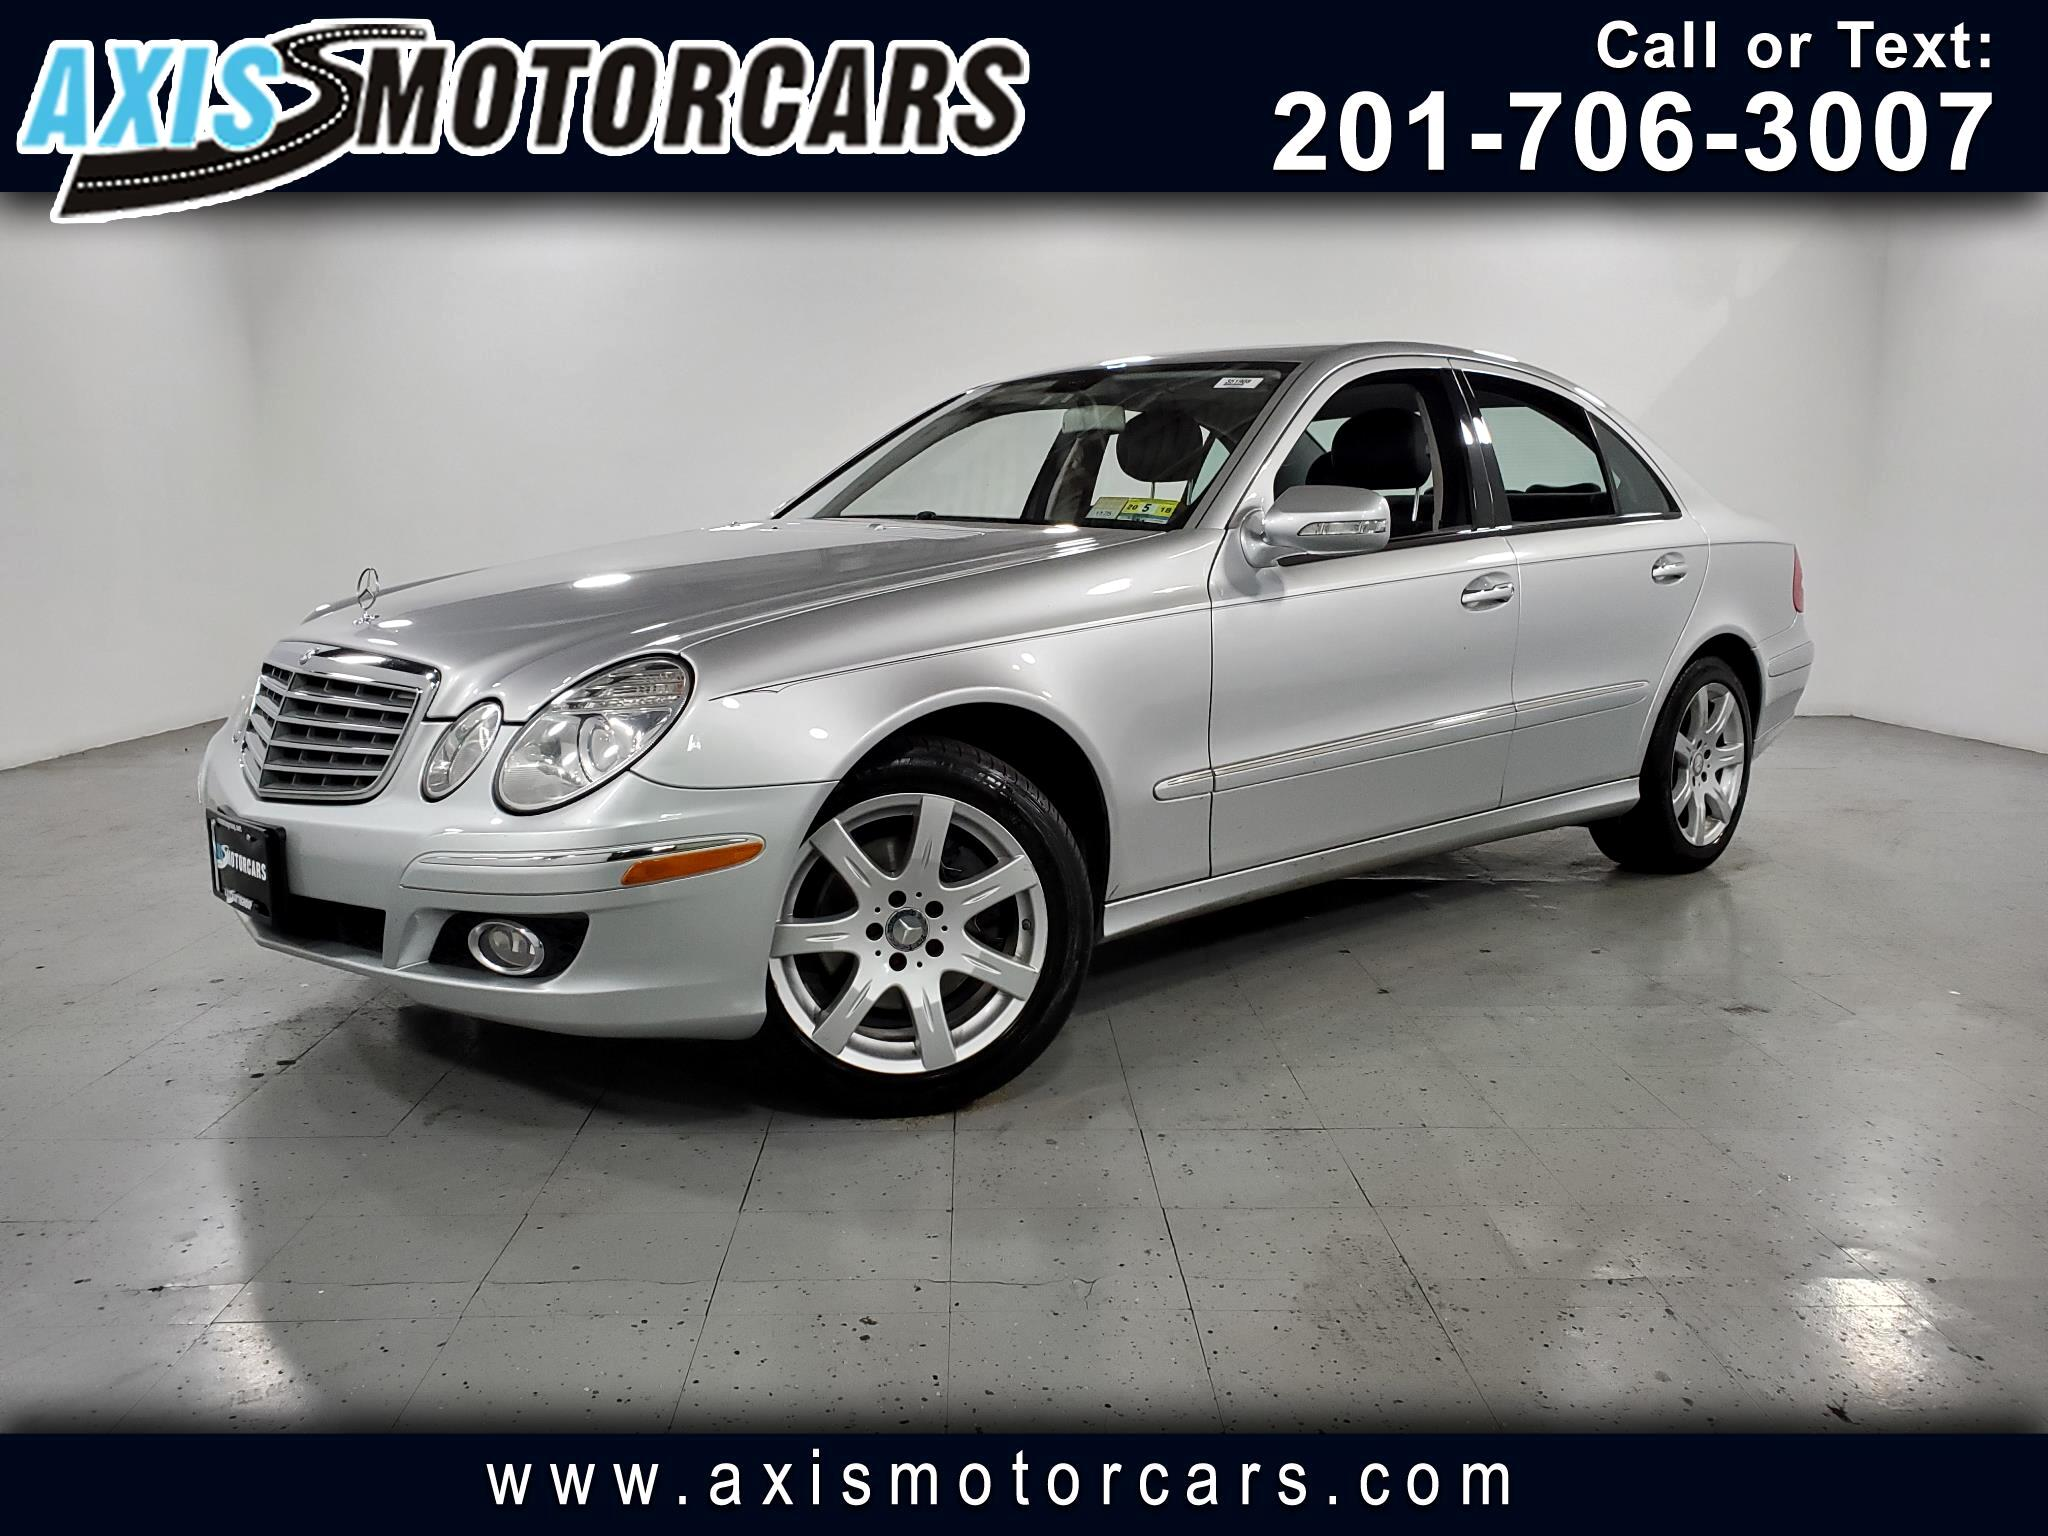 2008 Mercedes-Benz E350 w/Navigation Sunroof Leather